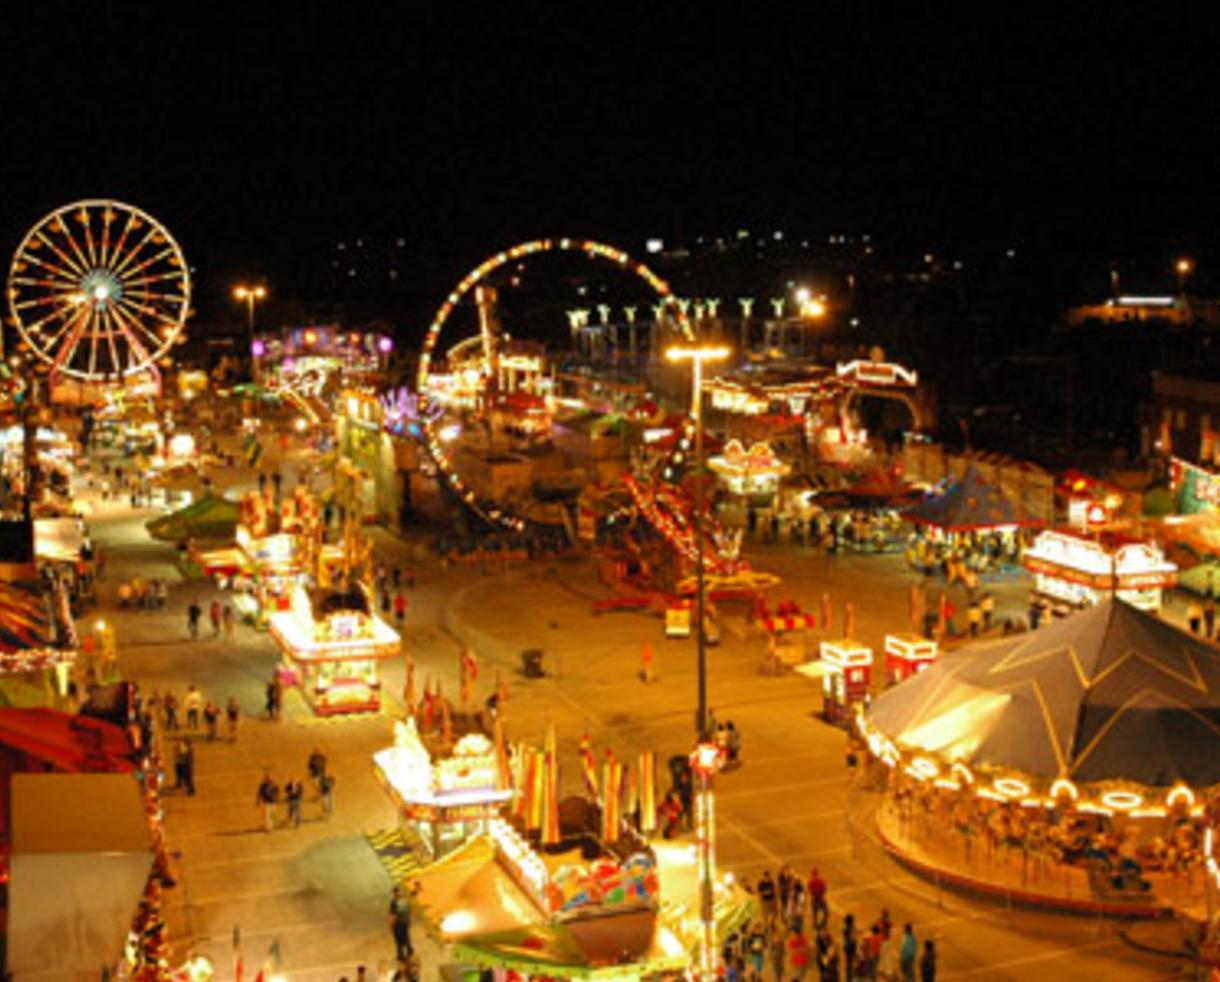 $15 for Howard County Fair UNLIMITED RIDES: August 5th - 12th (Up to 35% Off!)